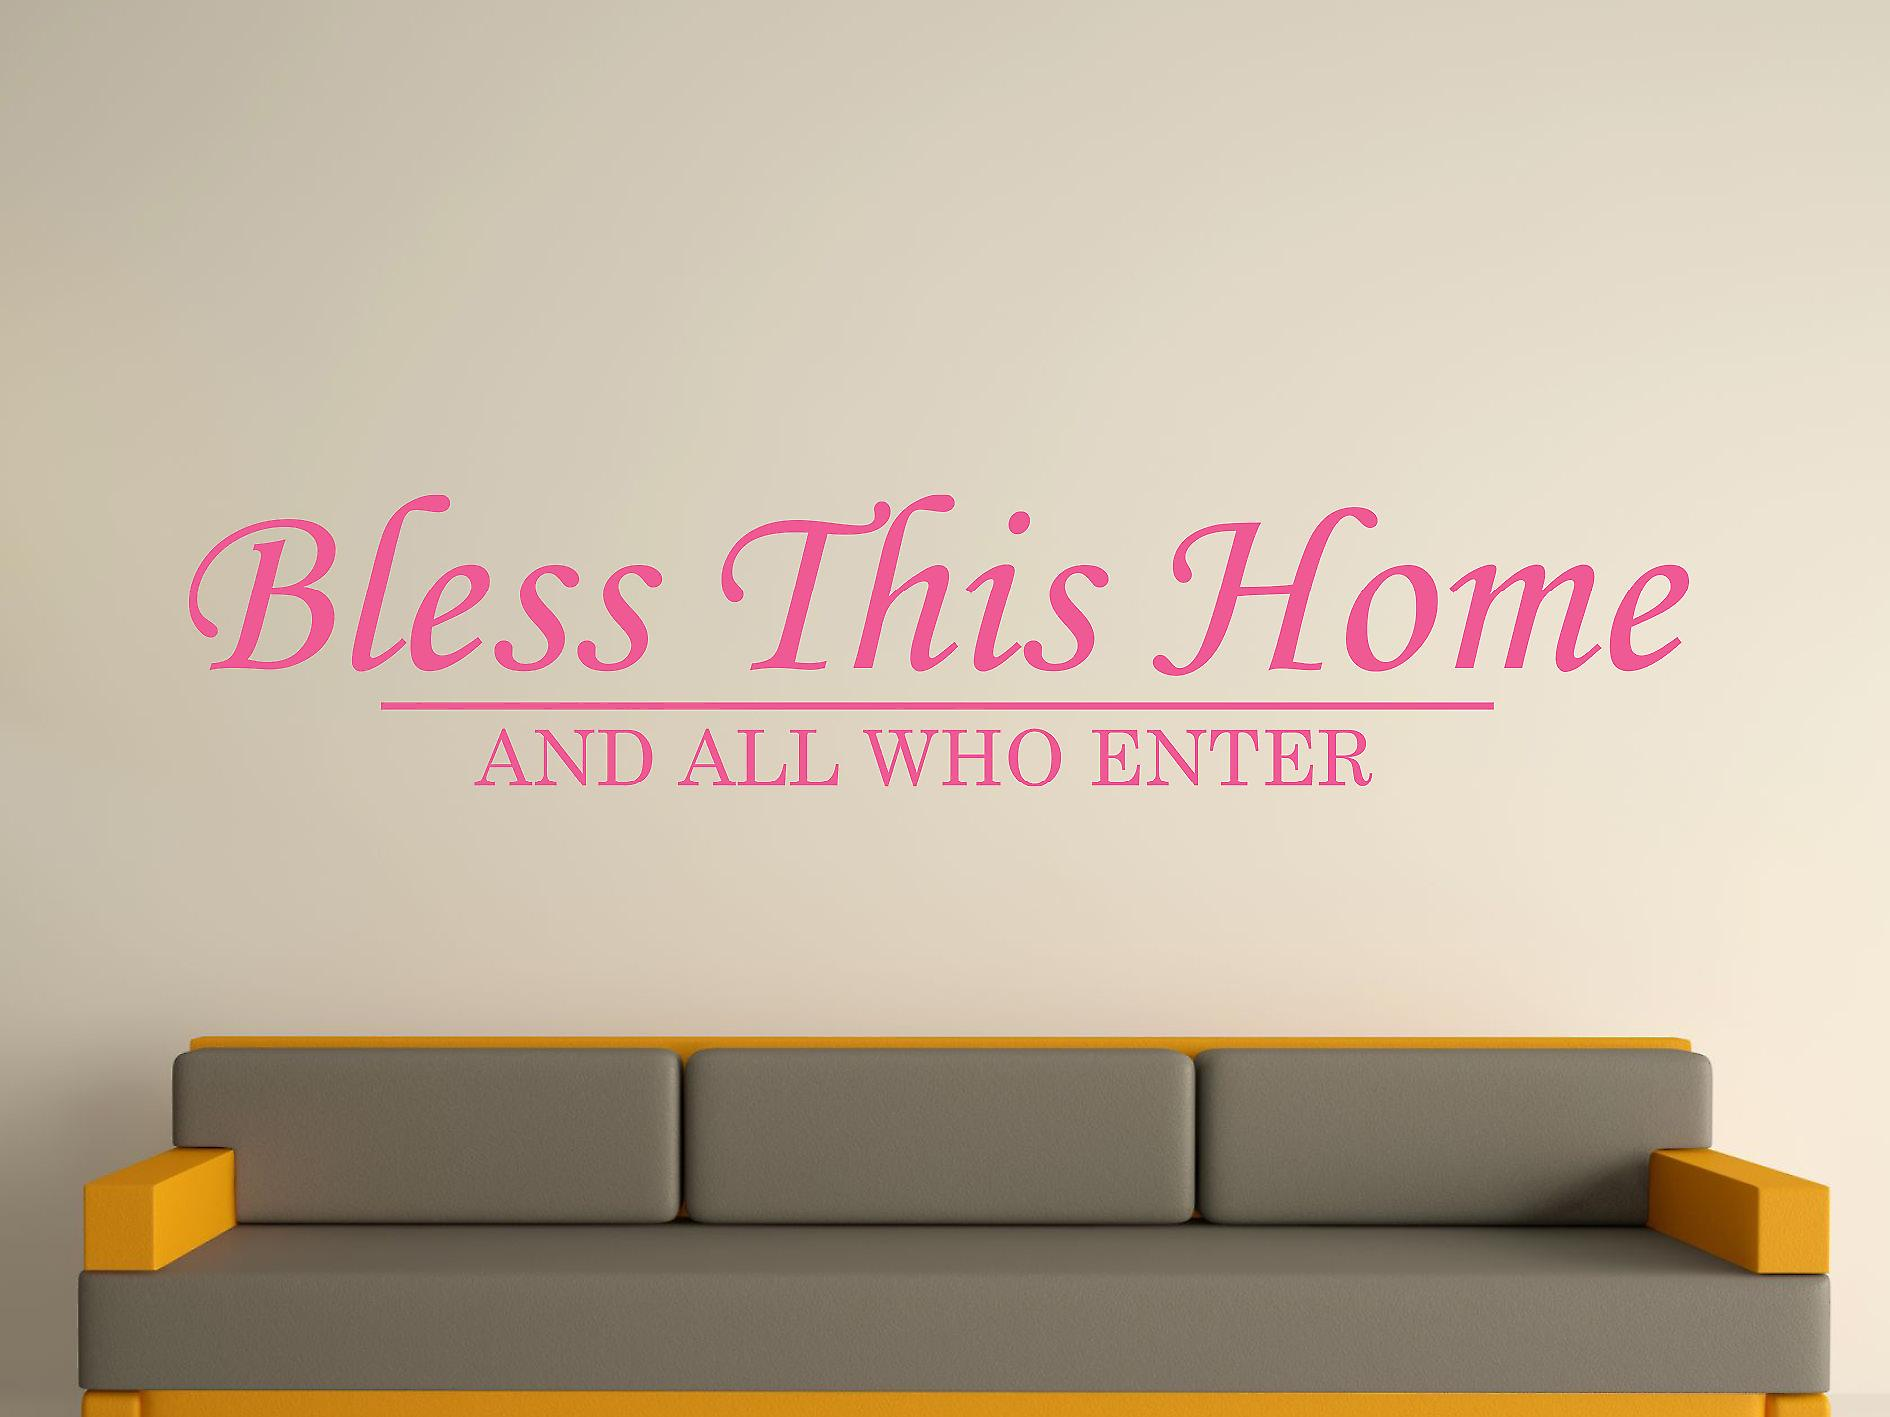 Bless This Home Wall Art Sticker - Pink